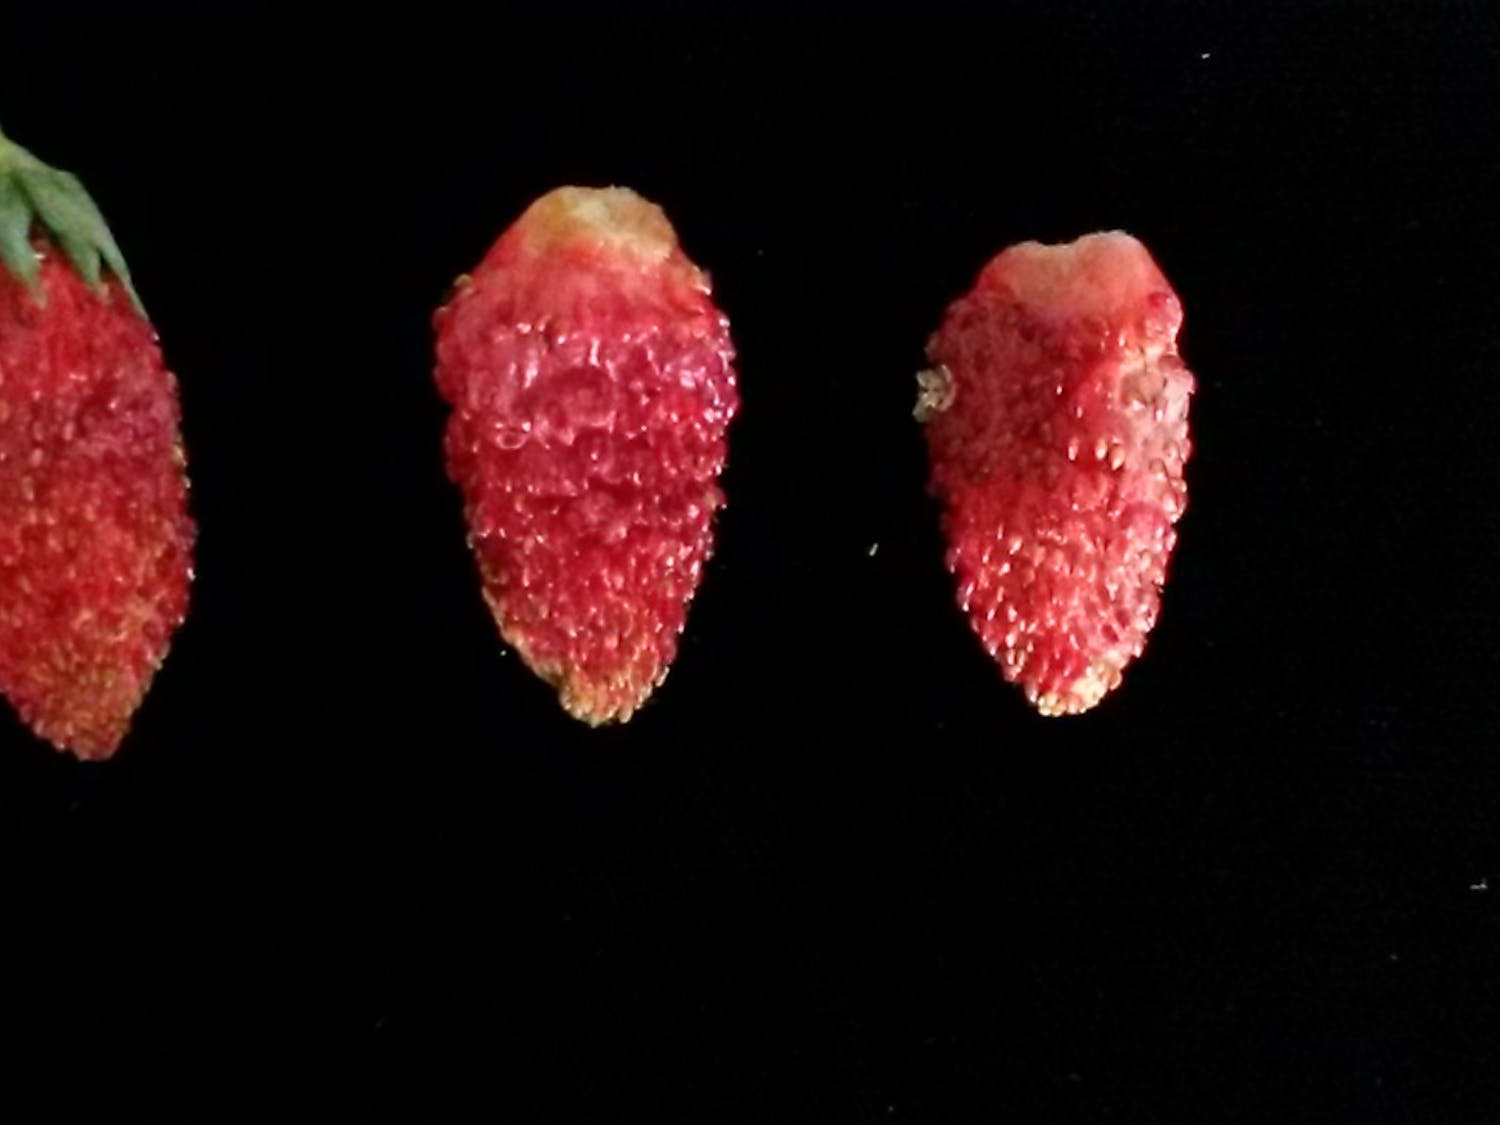 Alpine strawberries are tiny, soft and tasty. A UF researcher discovered a species that can grow in South Florida.